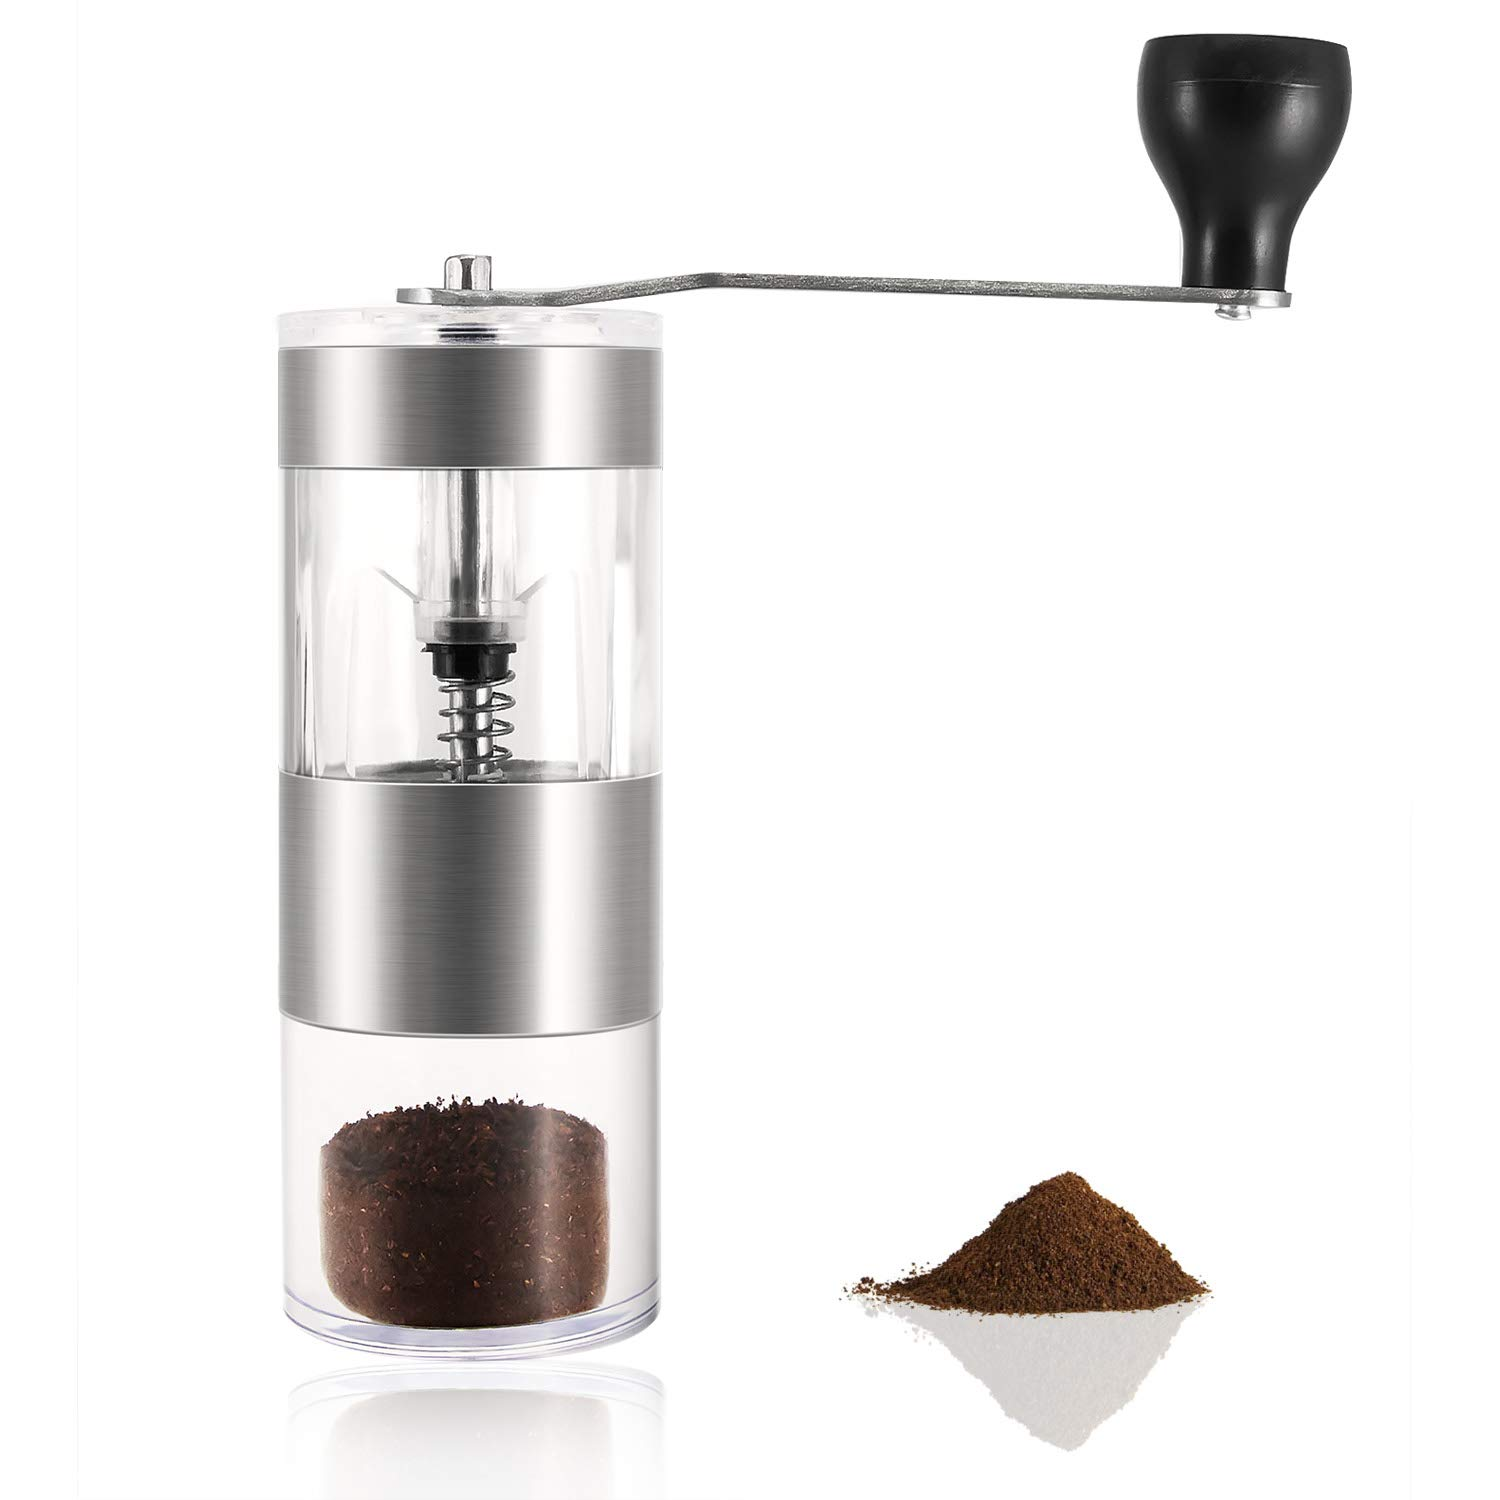 Acrylic Jars and Stainless Steel Handle HENSUN Manual Coffee Grinder Mini Ceramic Conical Burr Mill Portable Handheld Manual Coffee Bean Grinder for French Press